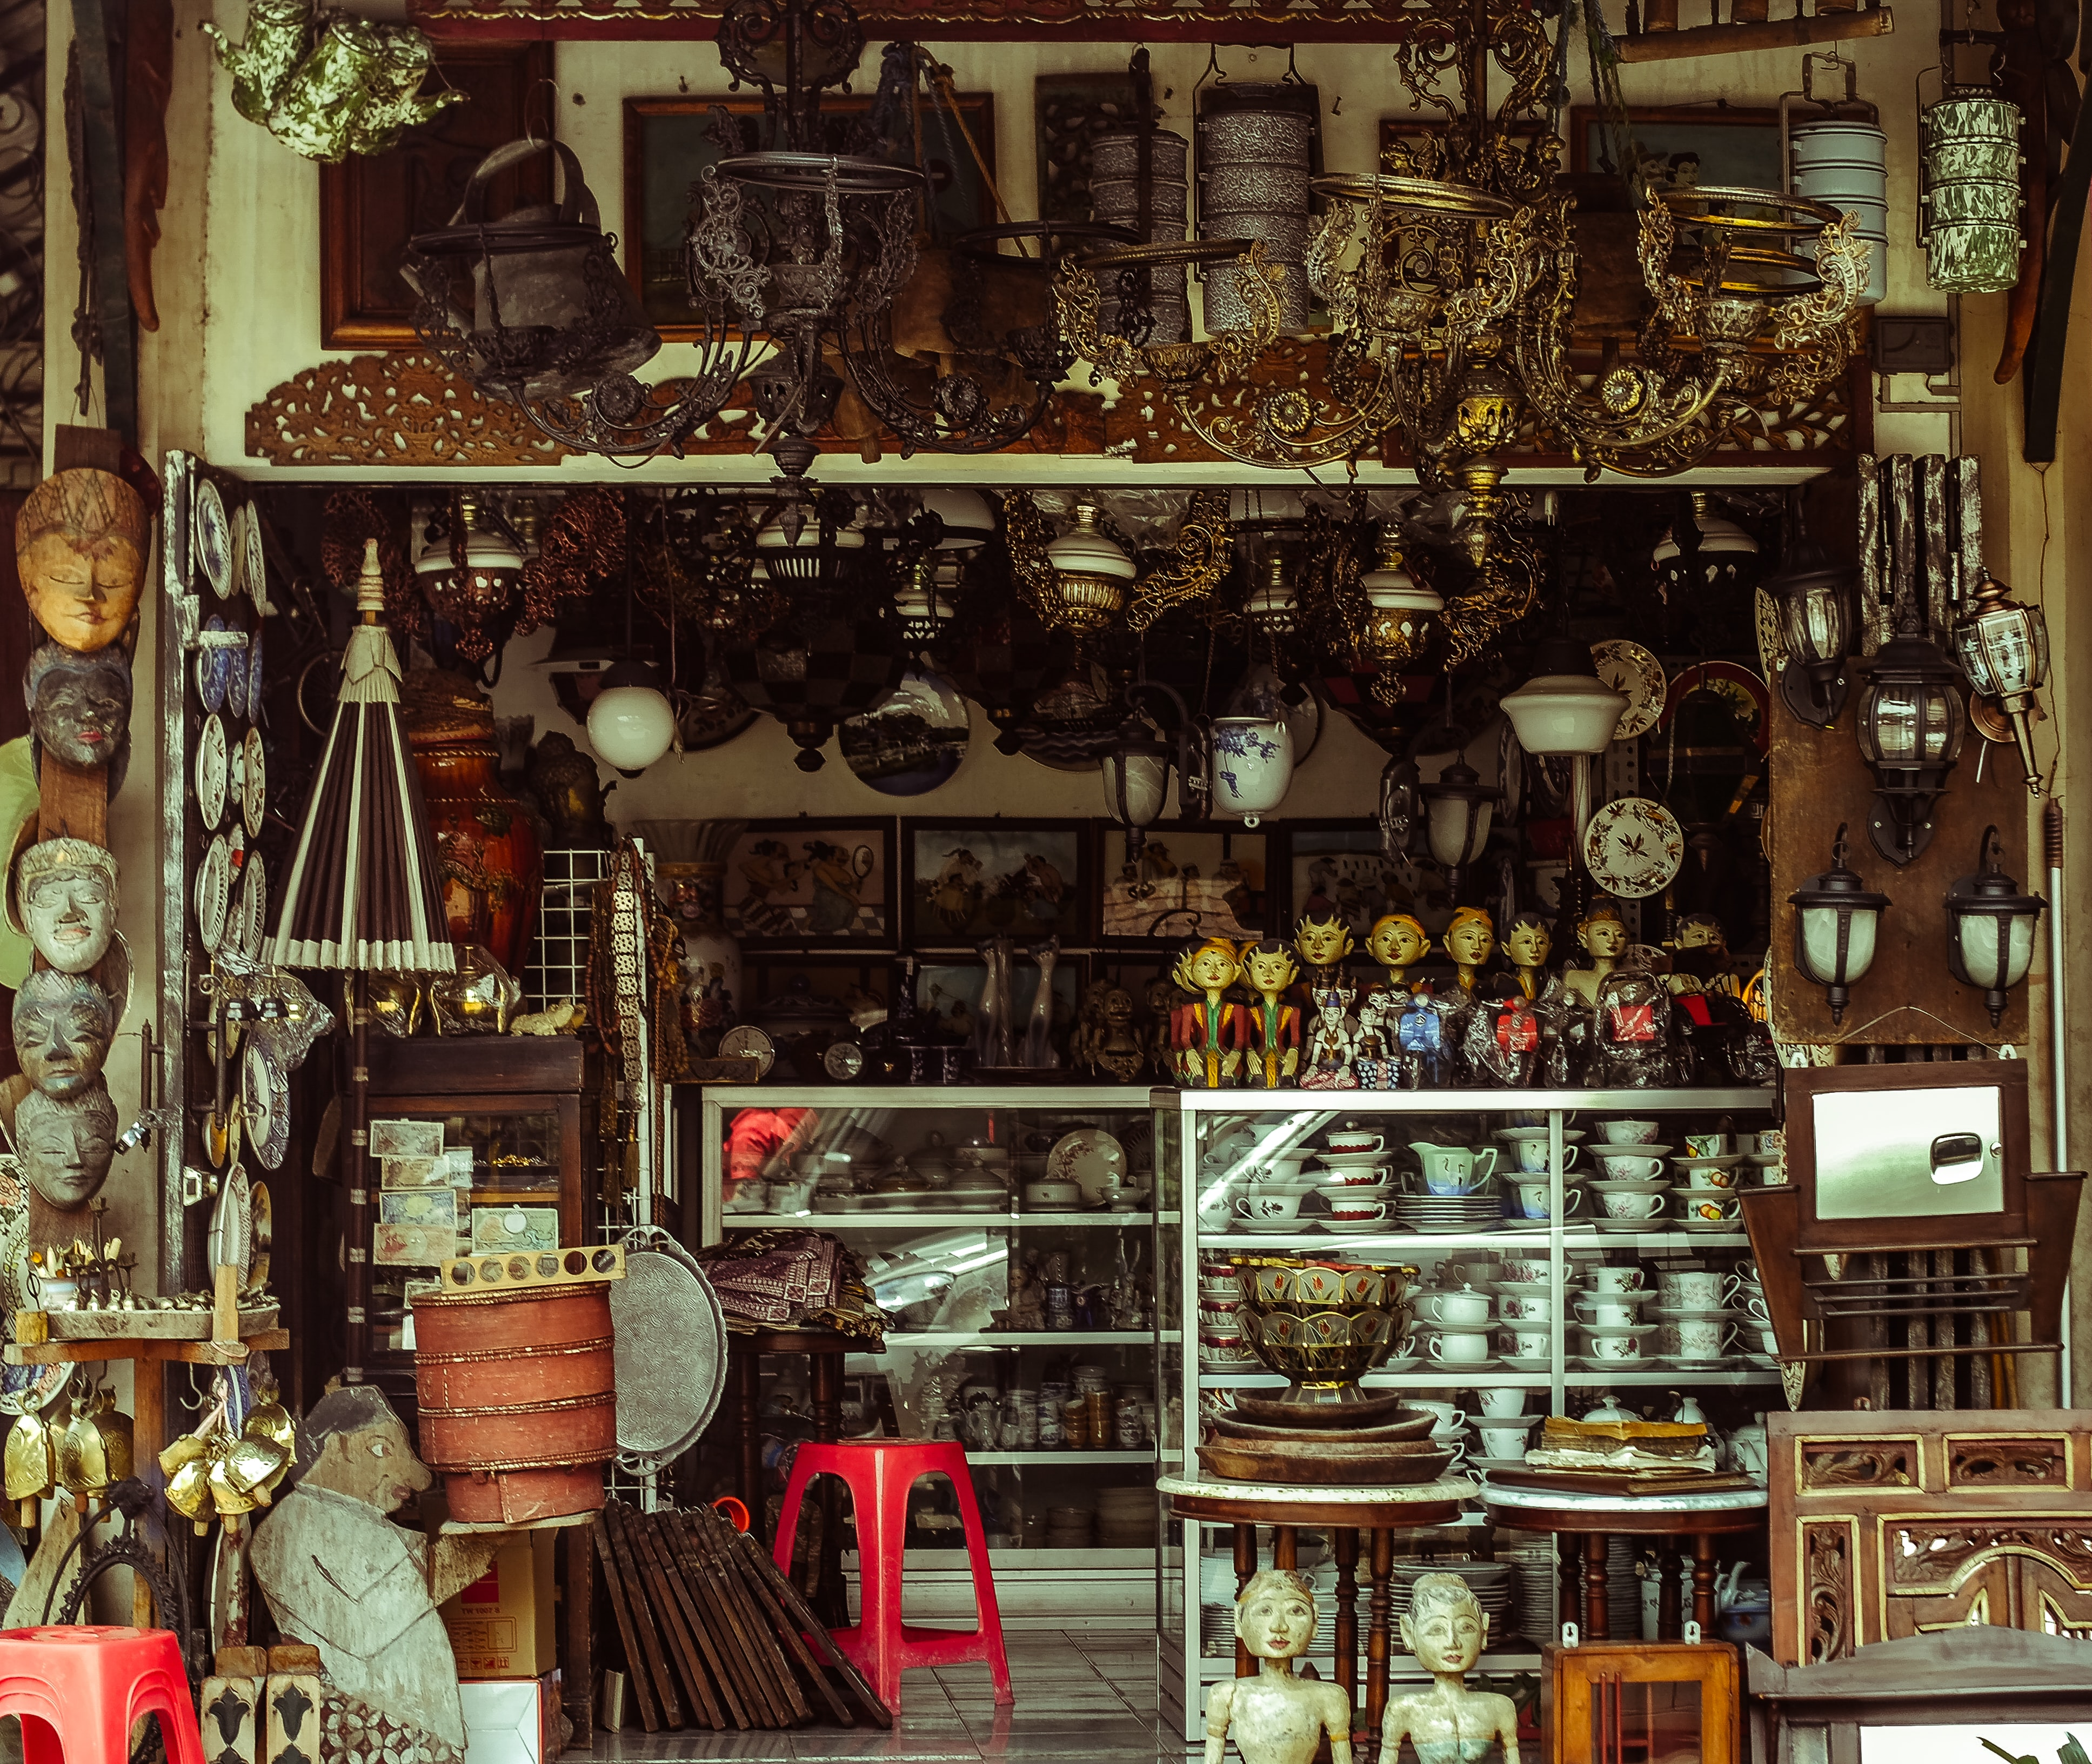 A souvenir shop with various trinkets and ornaments